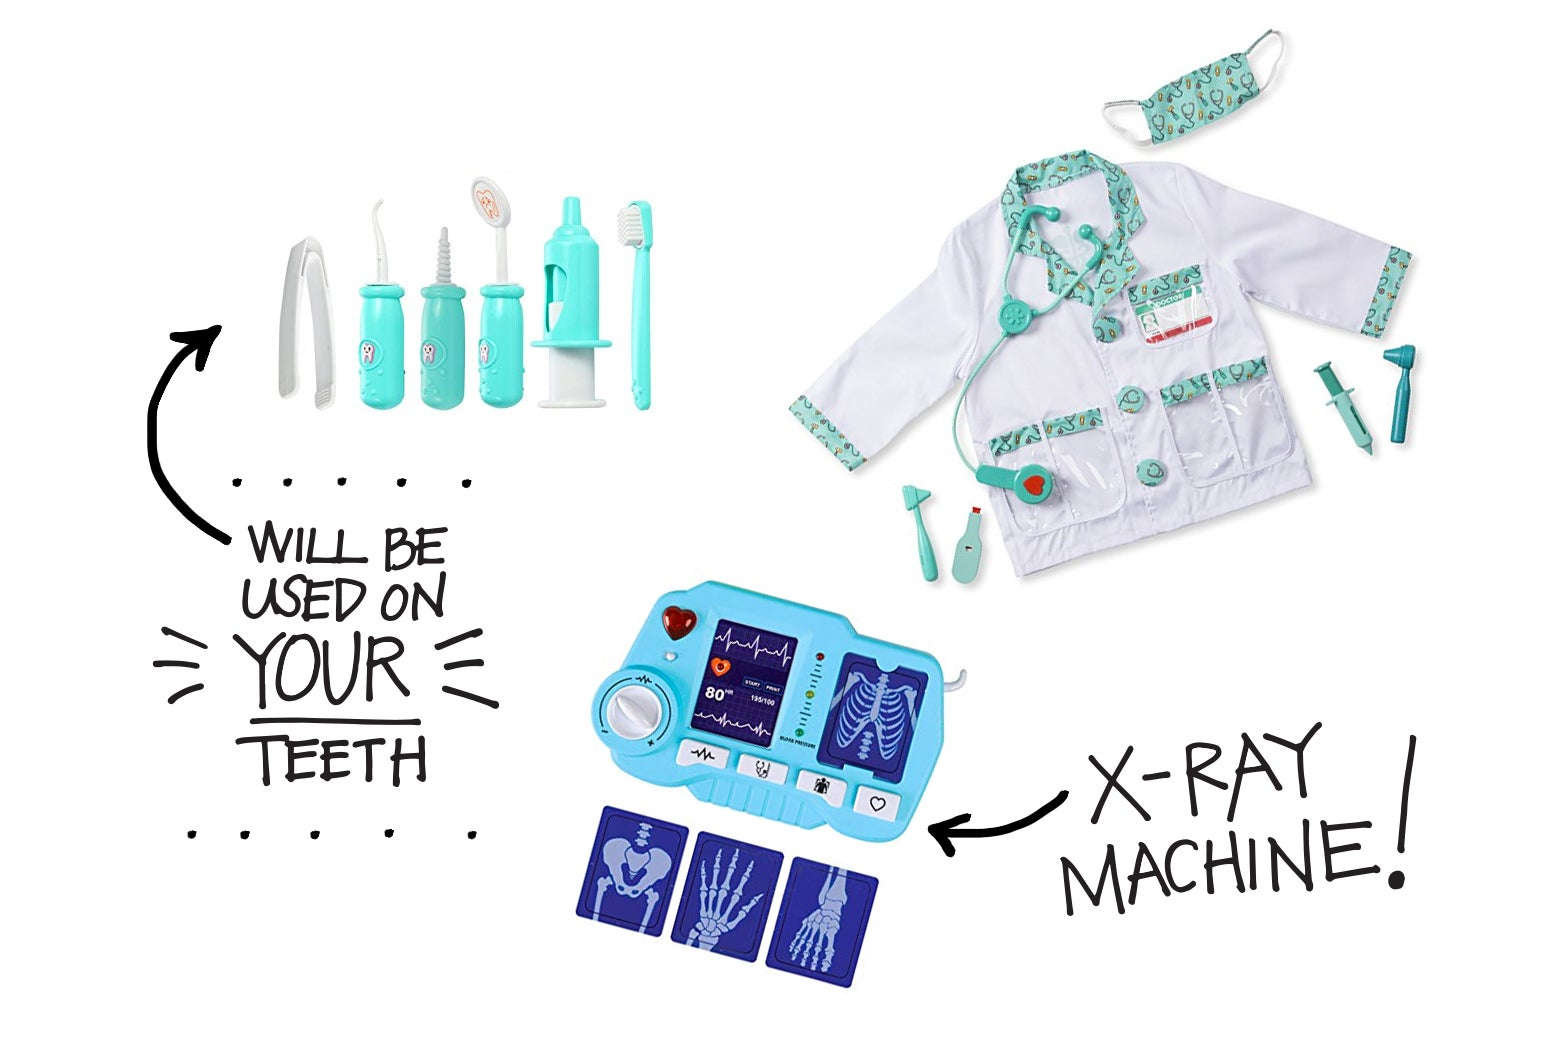 Parts from kids' toy doctor kits, including dentist tools, an X-ray machine, and a doctor's coat